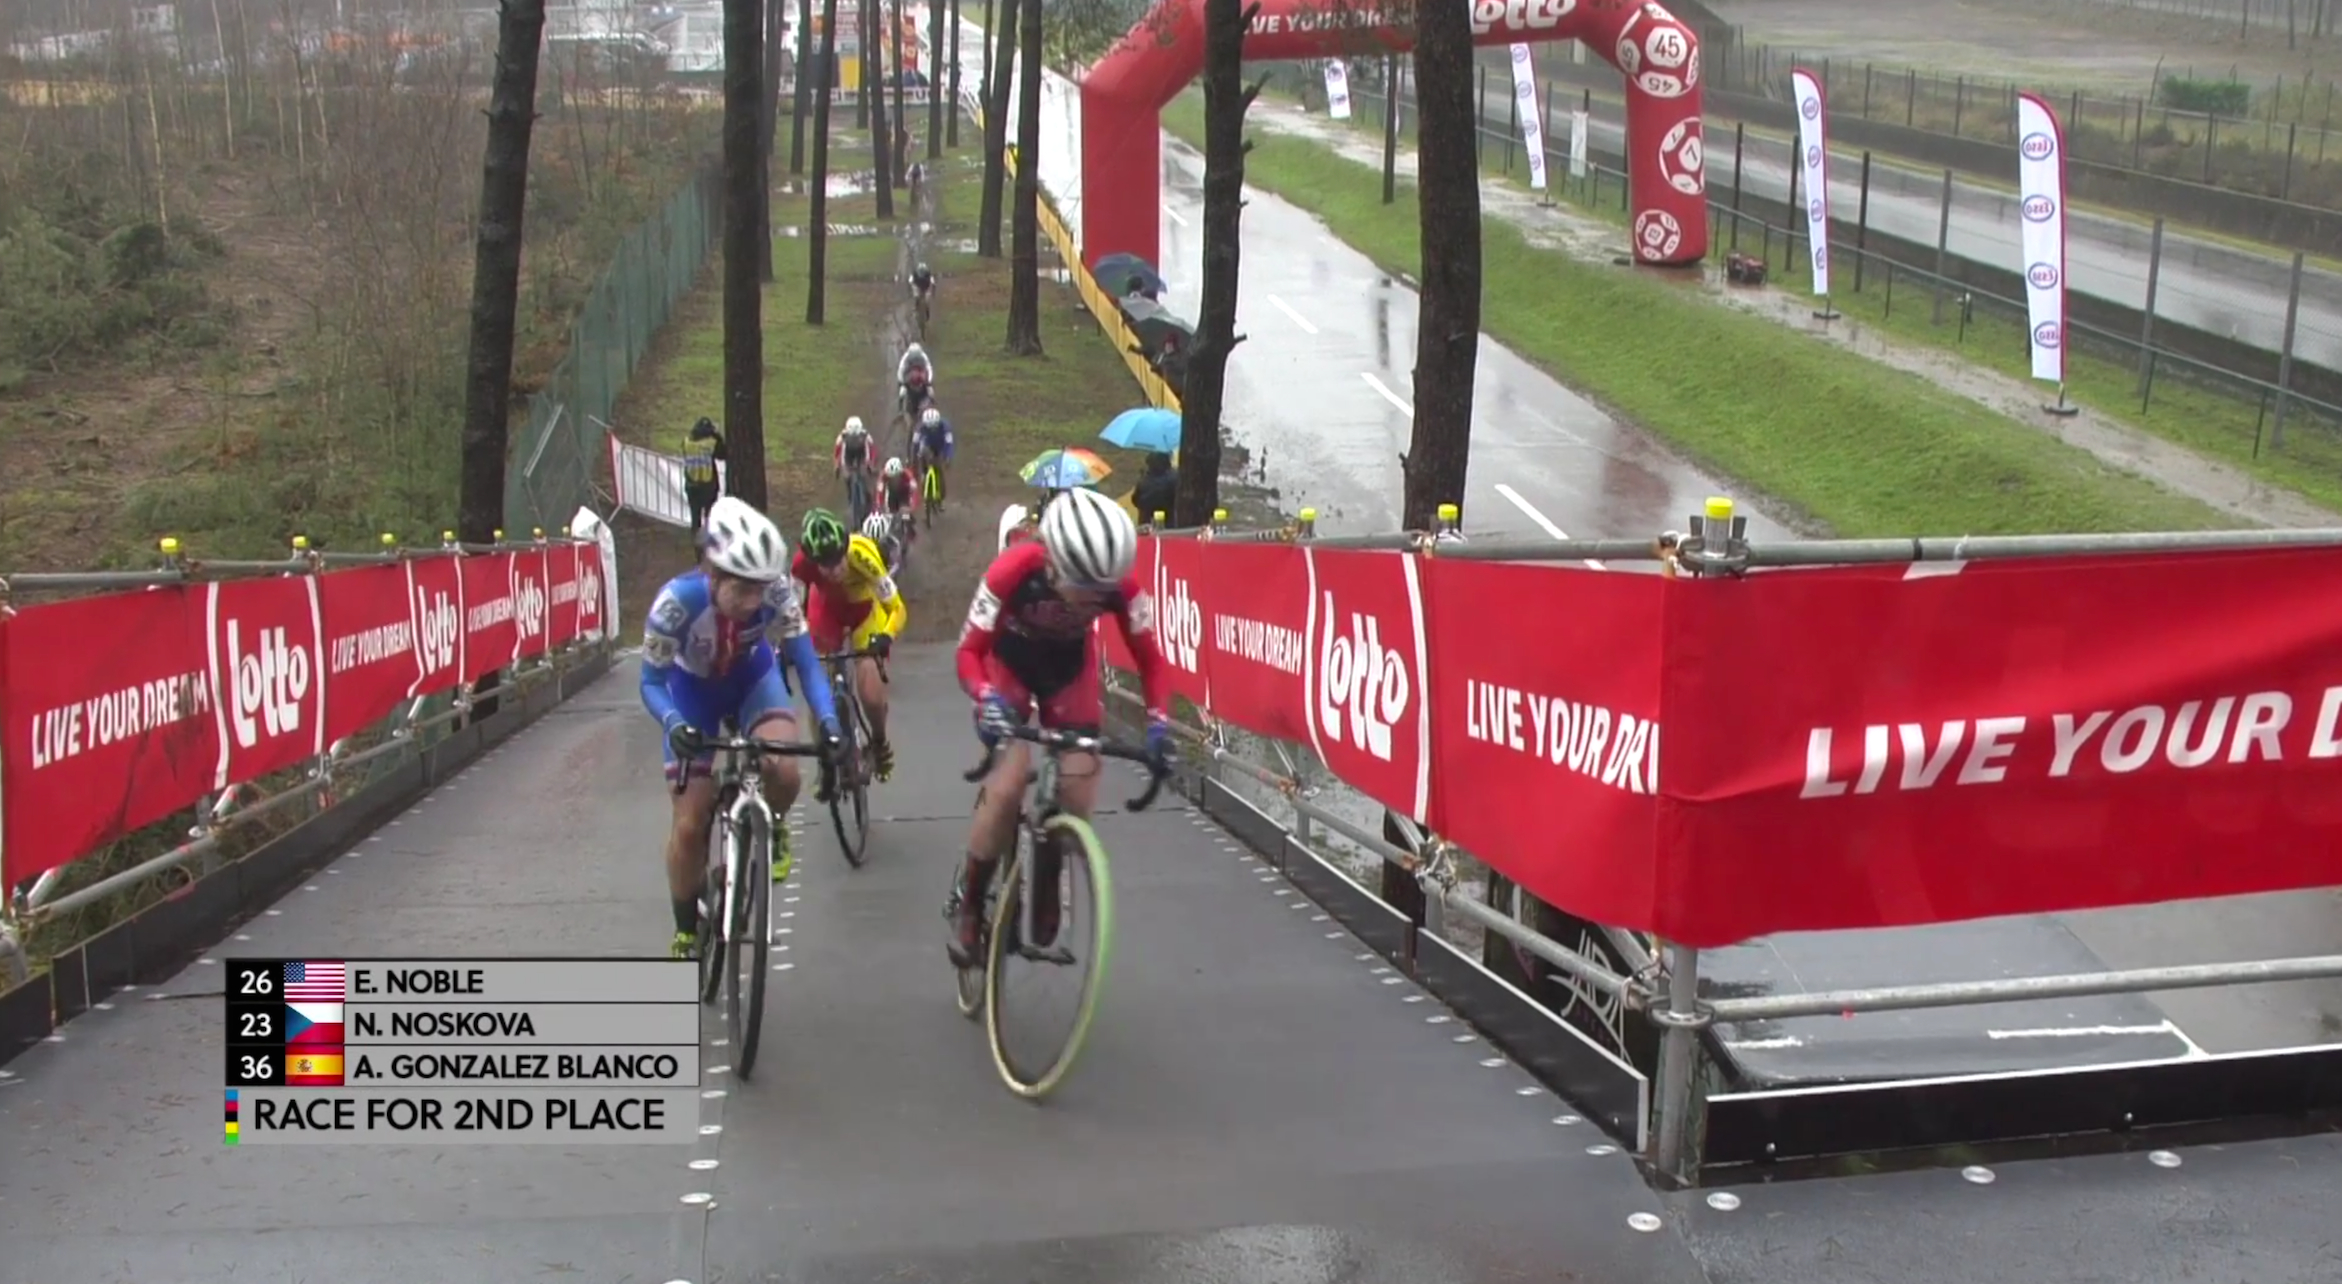 Early in the race,Ellen Noble was riding in 2nd place. She eventually finished 6th.